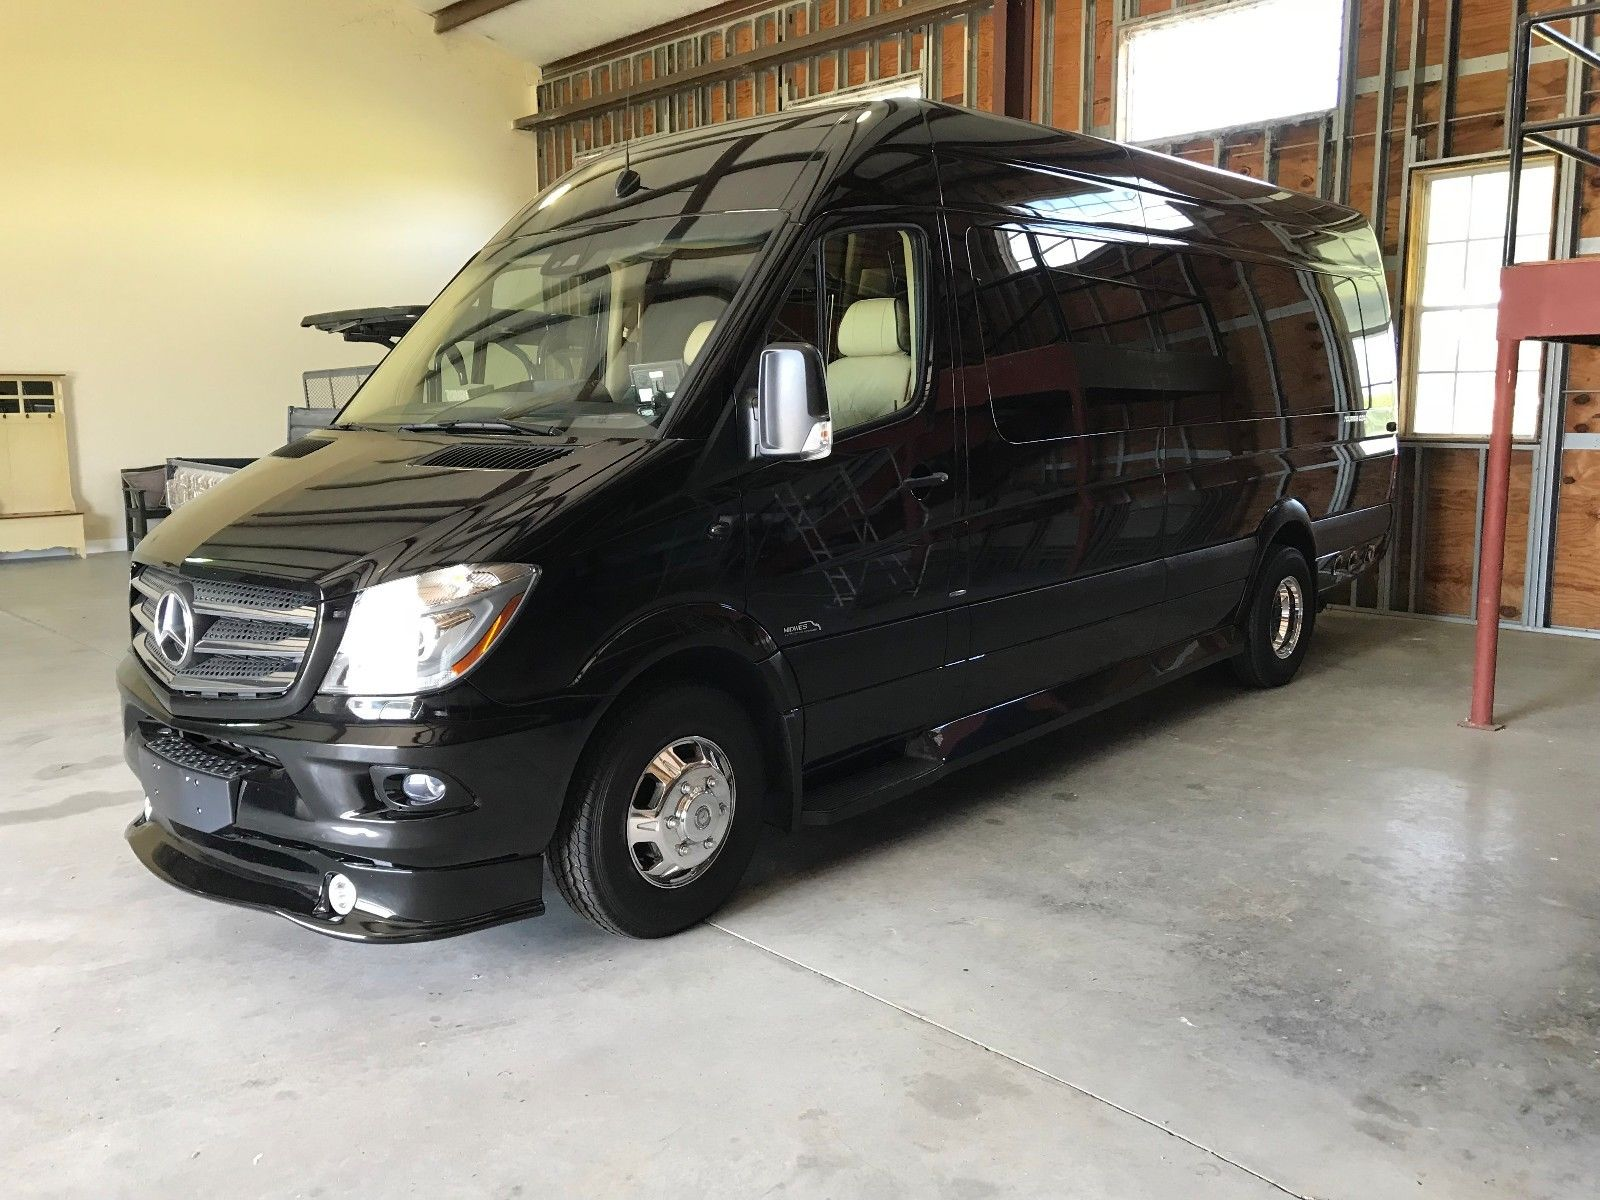 Mercedes Sprinter 10 Passenger Day Cruiser $2000/week or $450/day